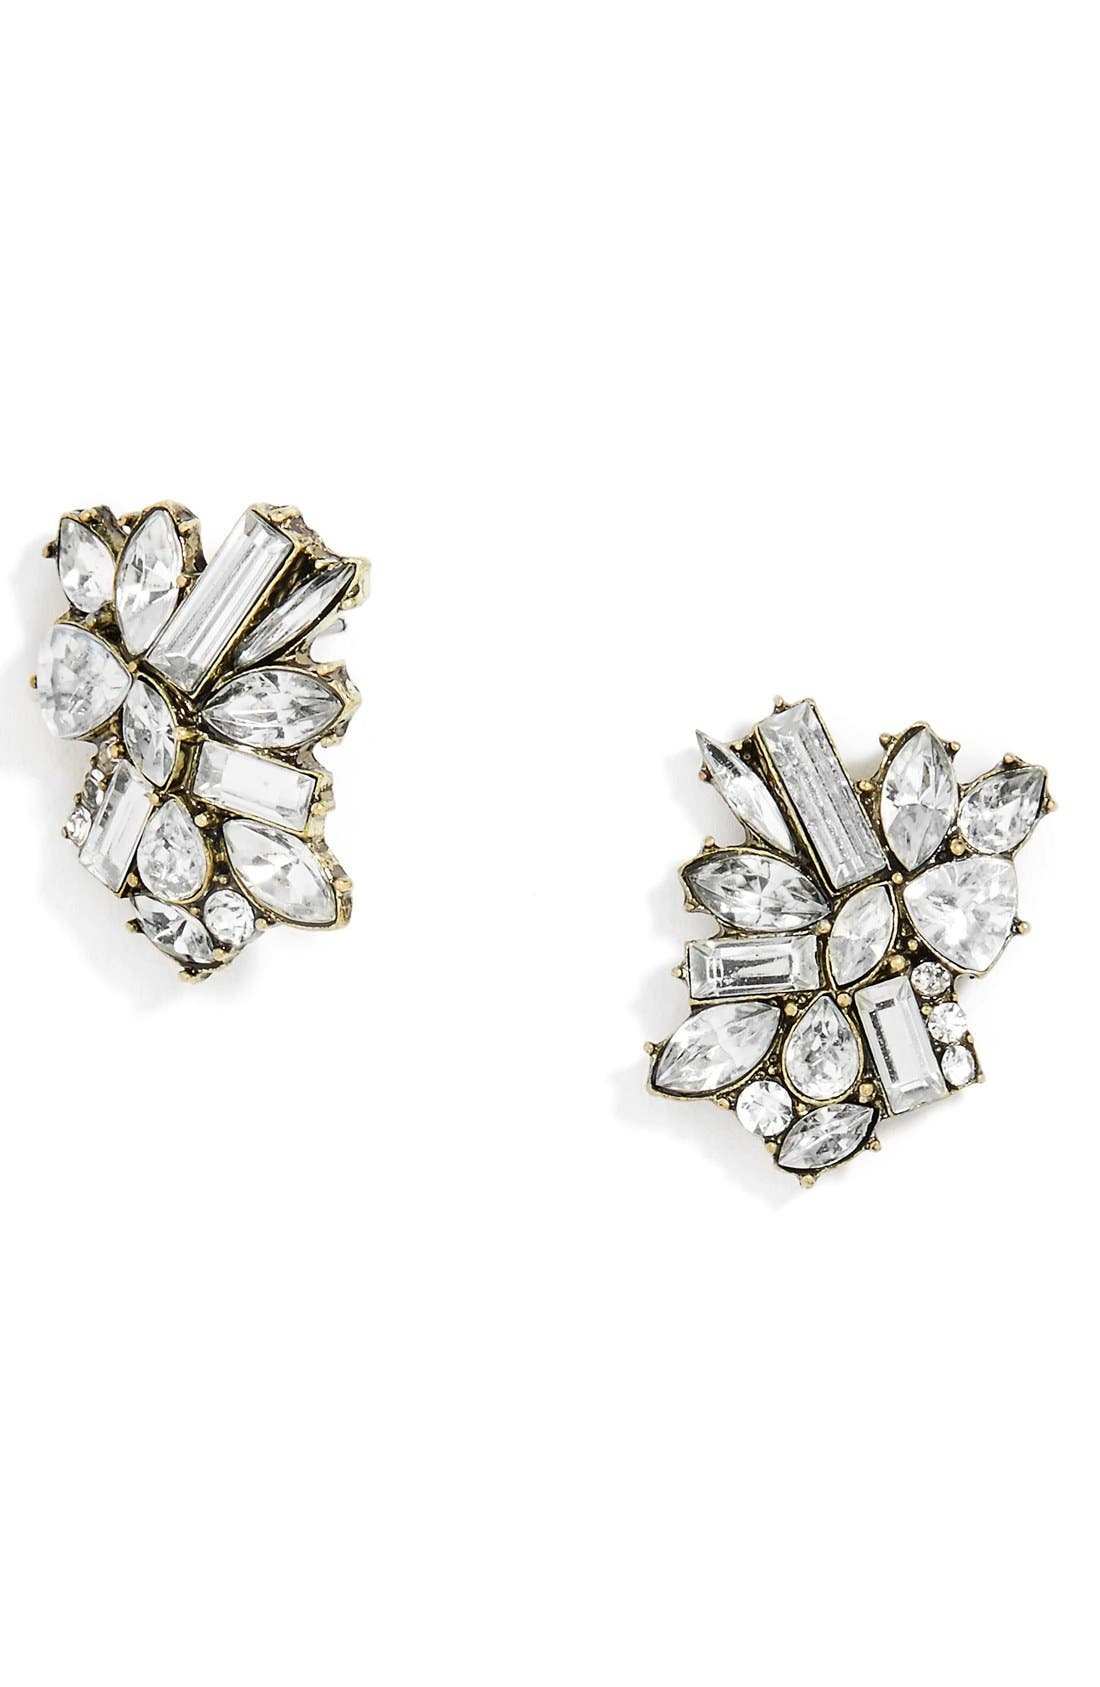 Criostal Set of 2 Crystal Stud Earrings,                             Alternate thumbnail 2, color,                             719